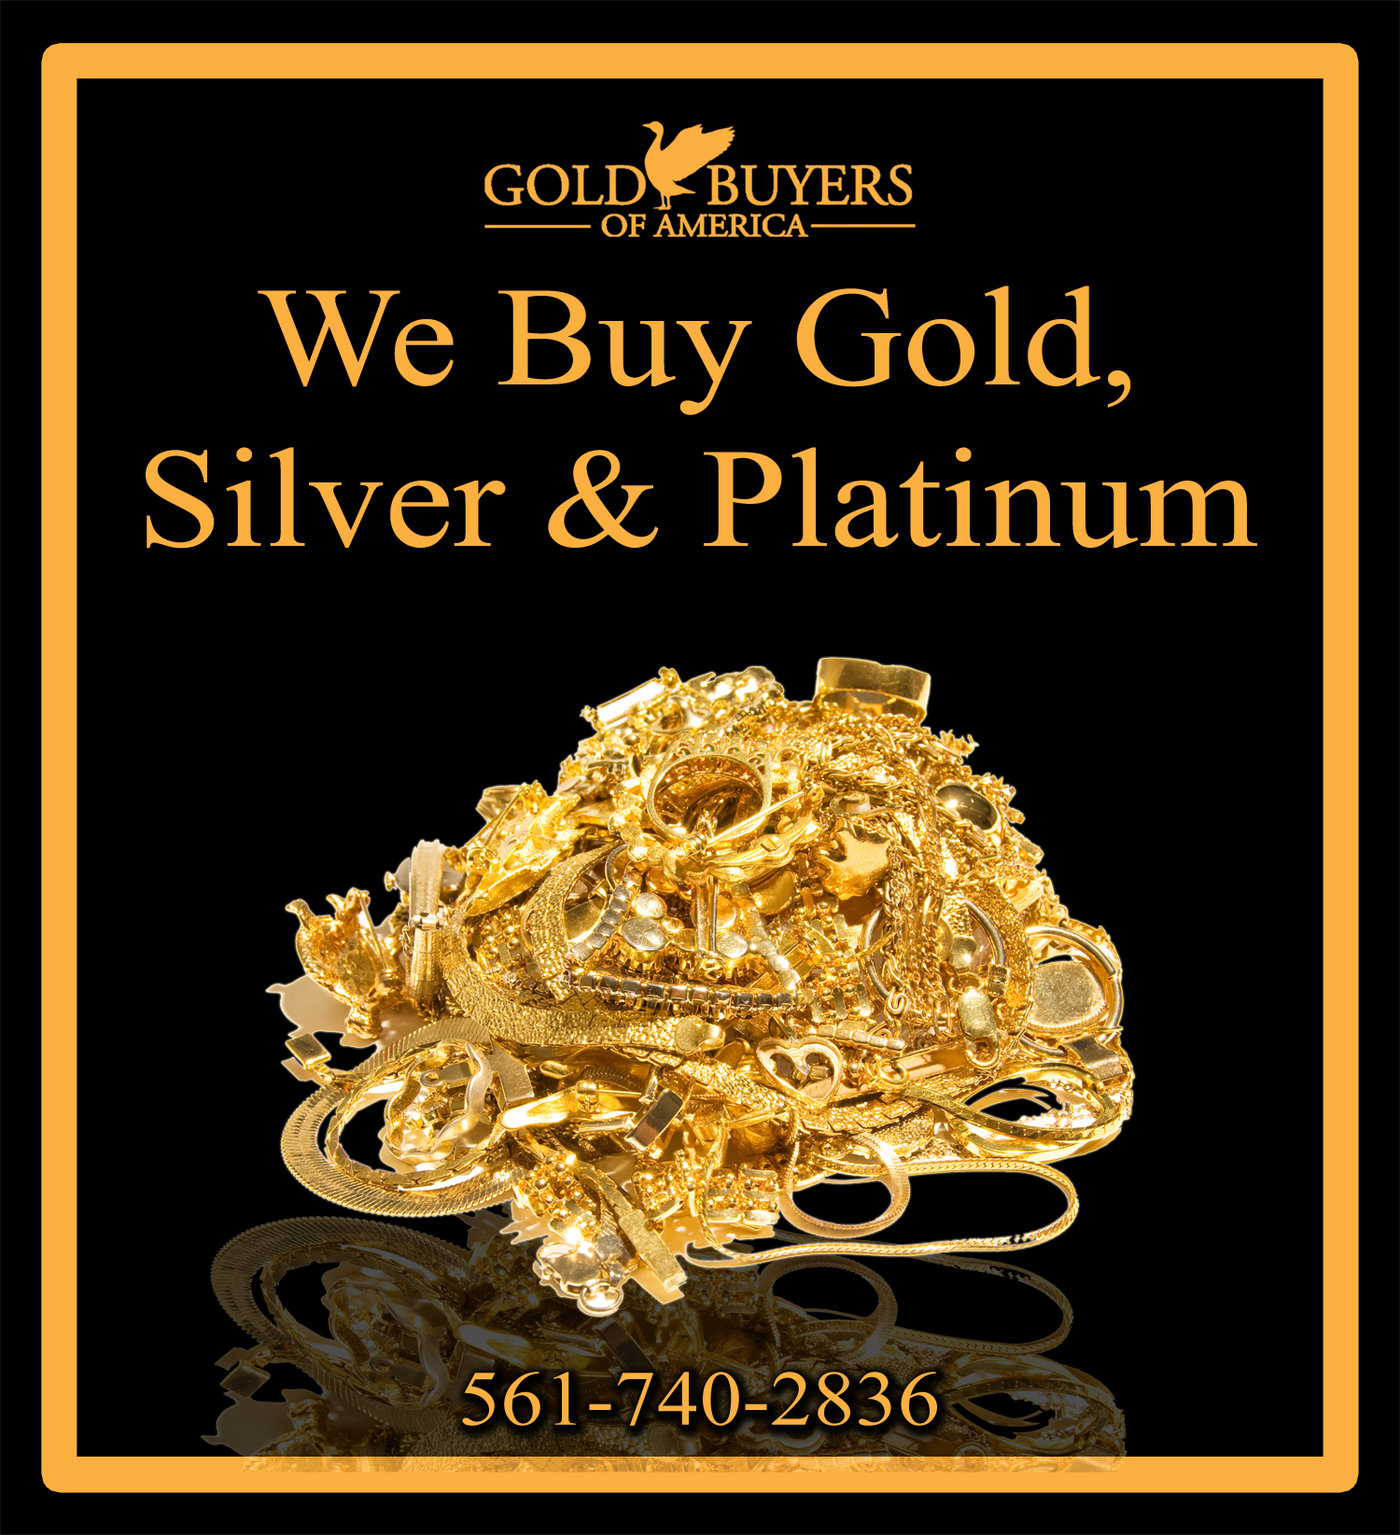 Gold Buyers by Maria Tabata Kerrigan at Coroflot com